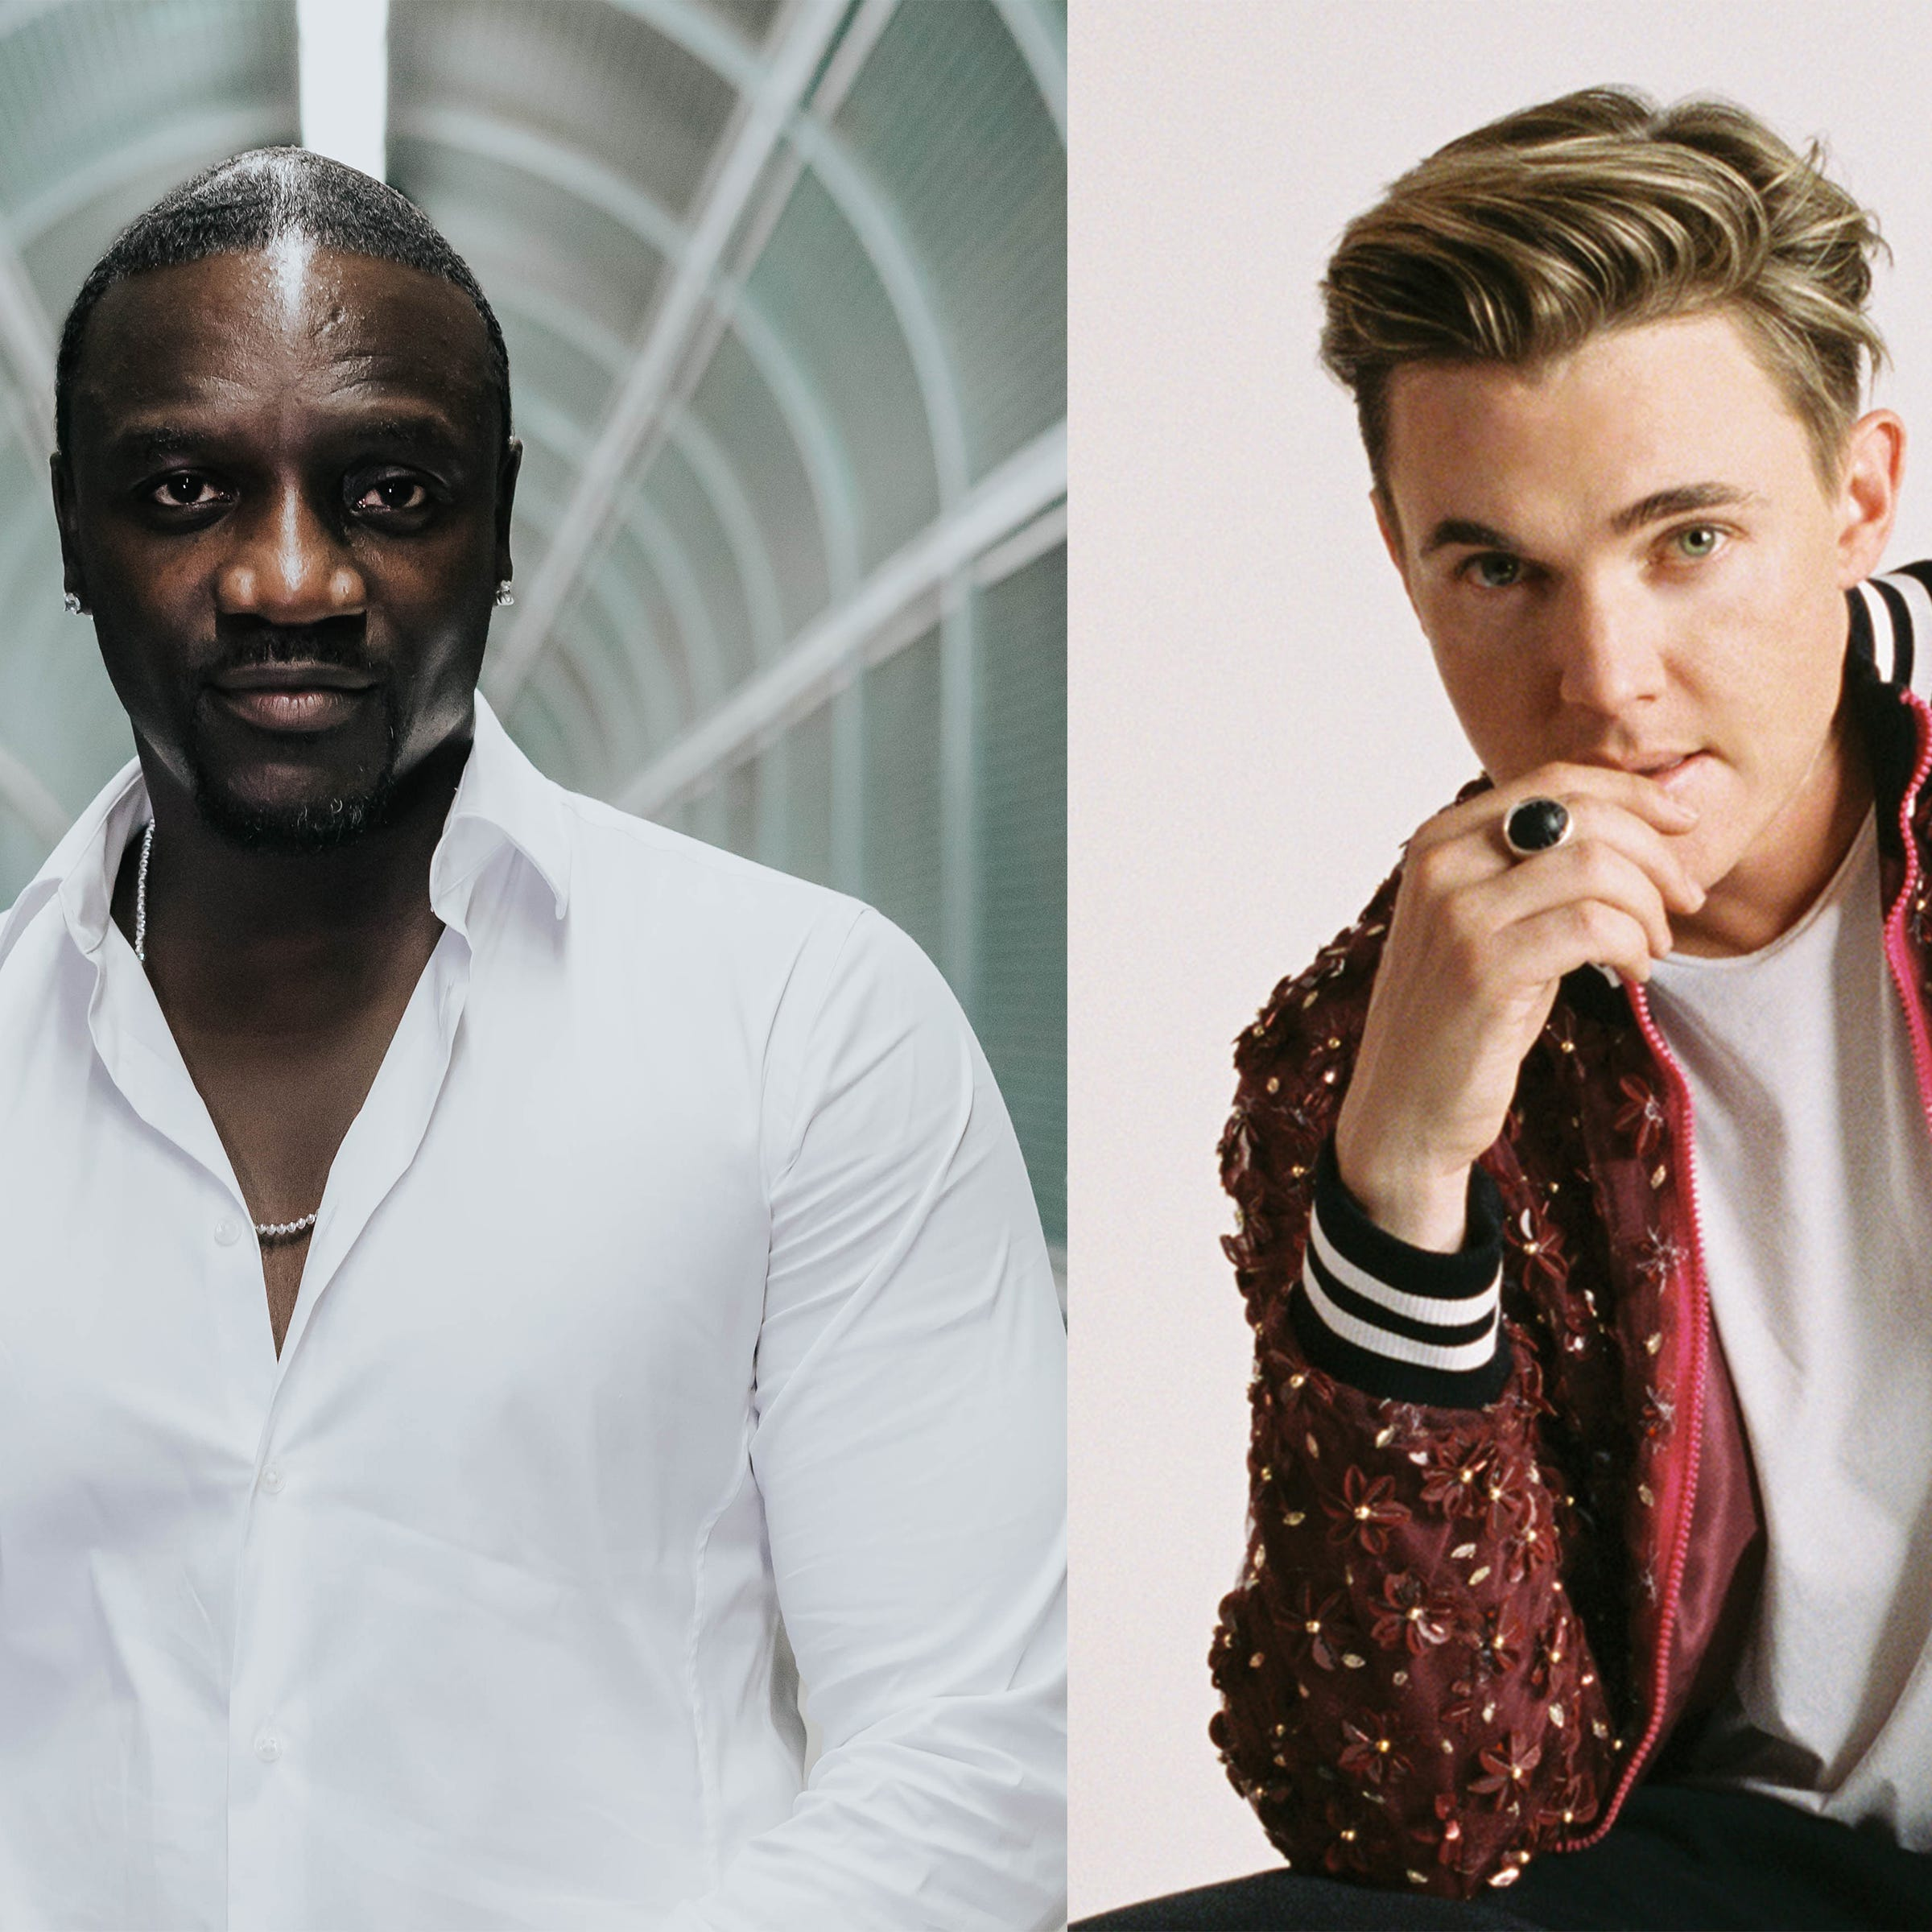 Akon, Jesse McCartney to perform at OSU's annual end-of-year concert